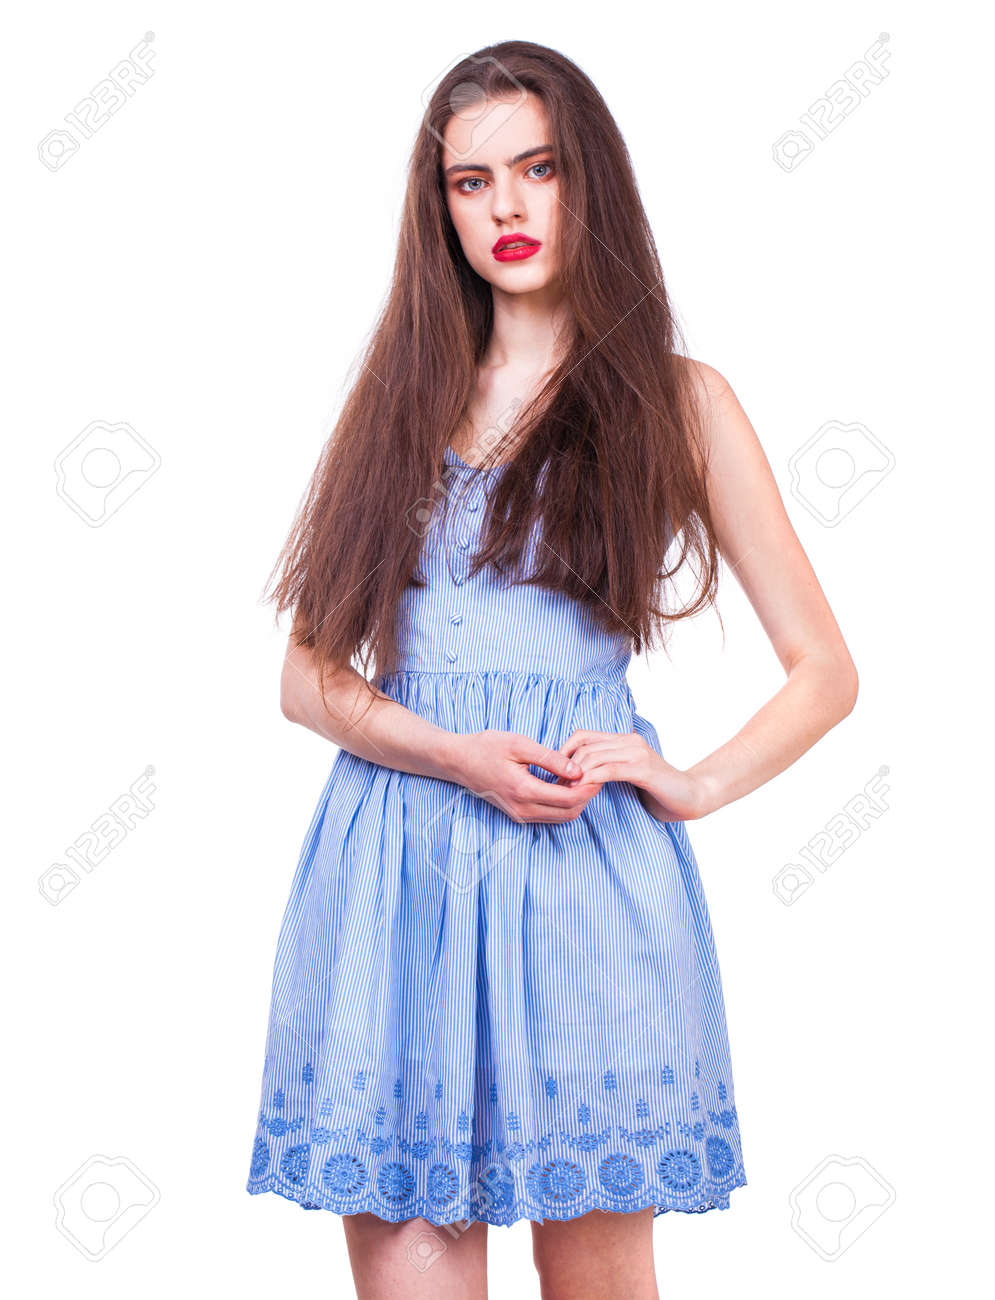 Close up portrait of a young beautiful happy brunette woman in blue dress, isolated on white background - 147518993